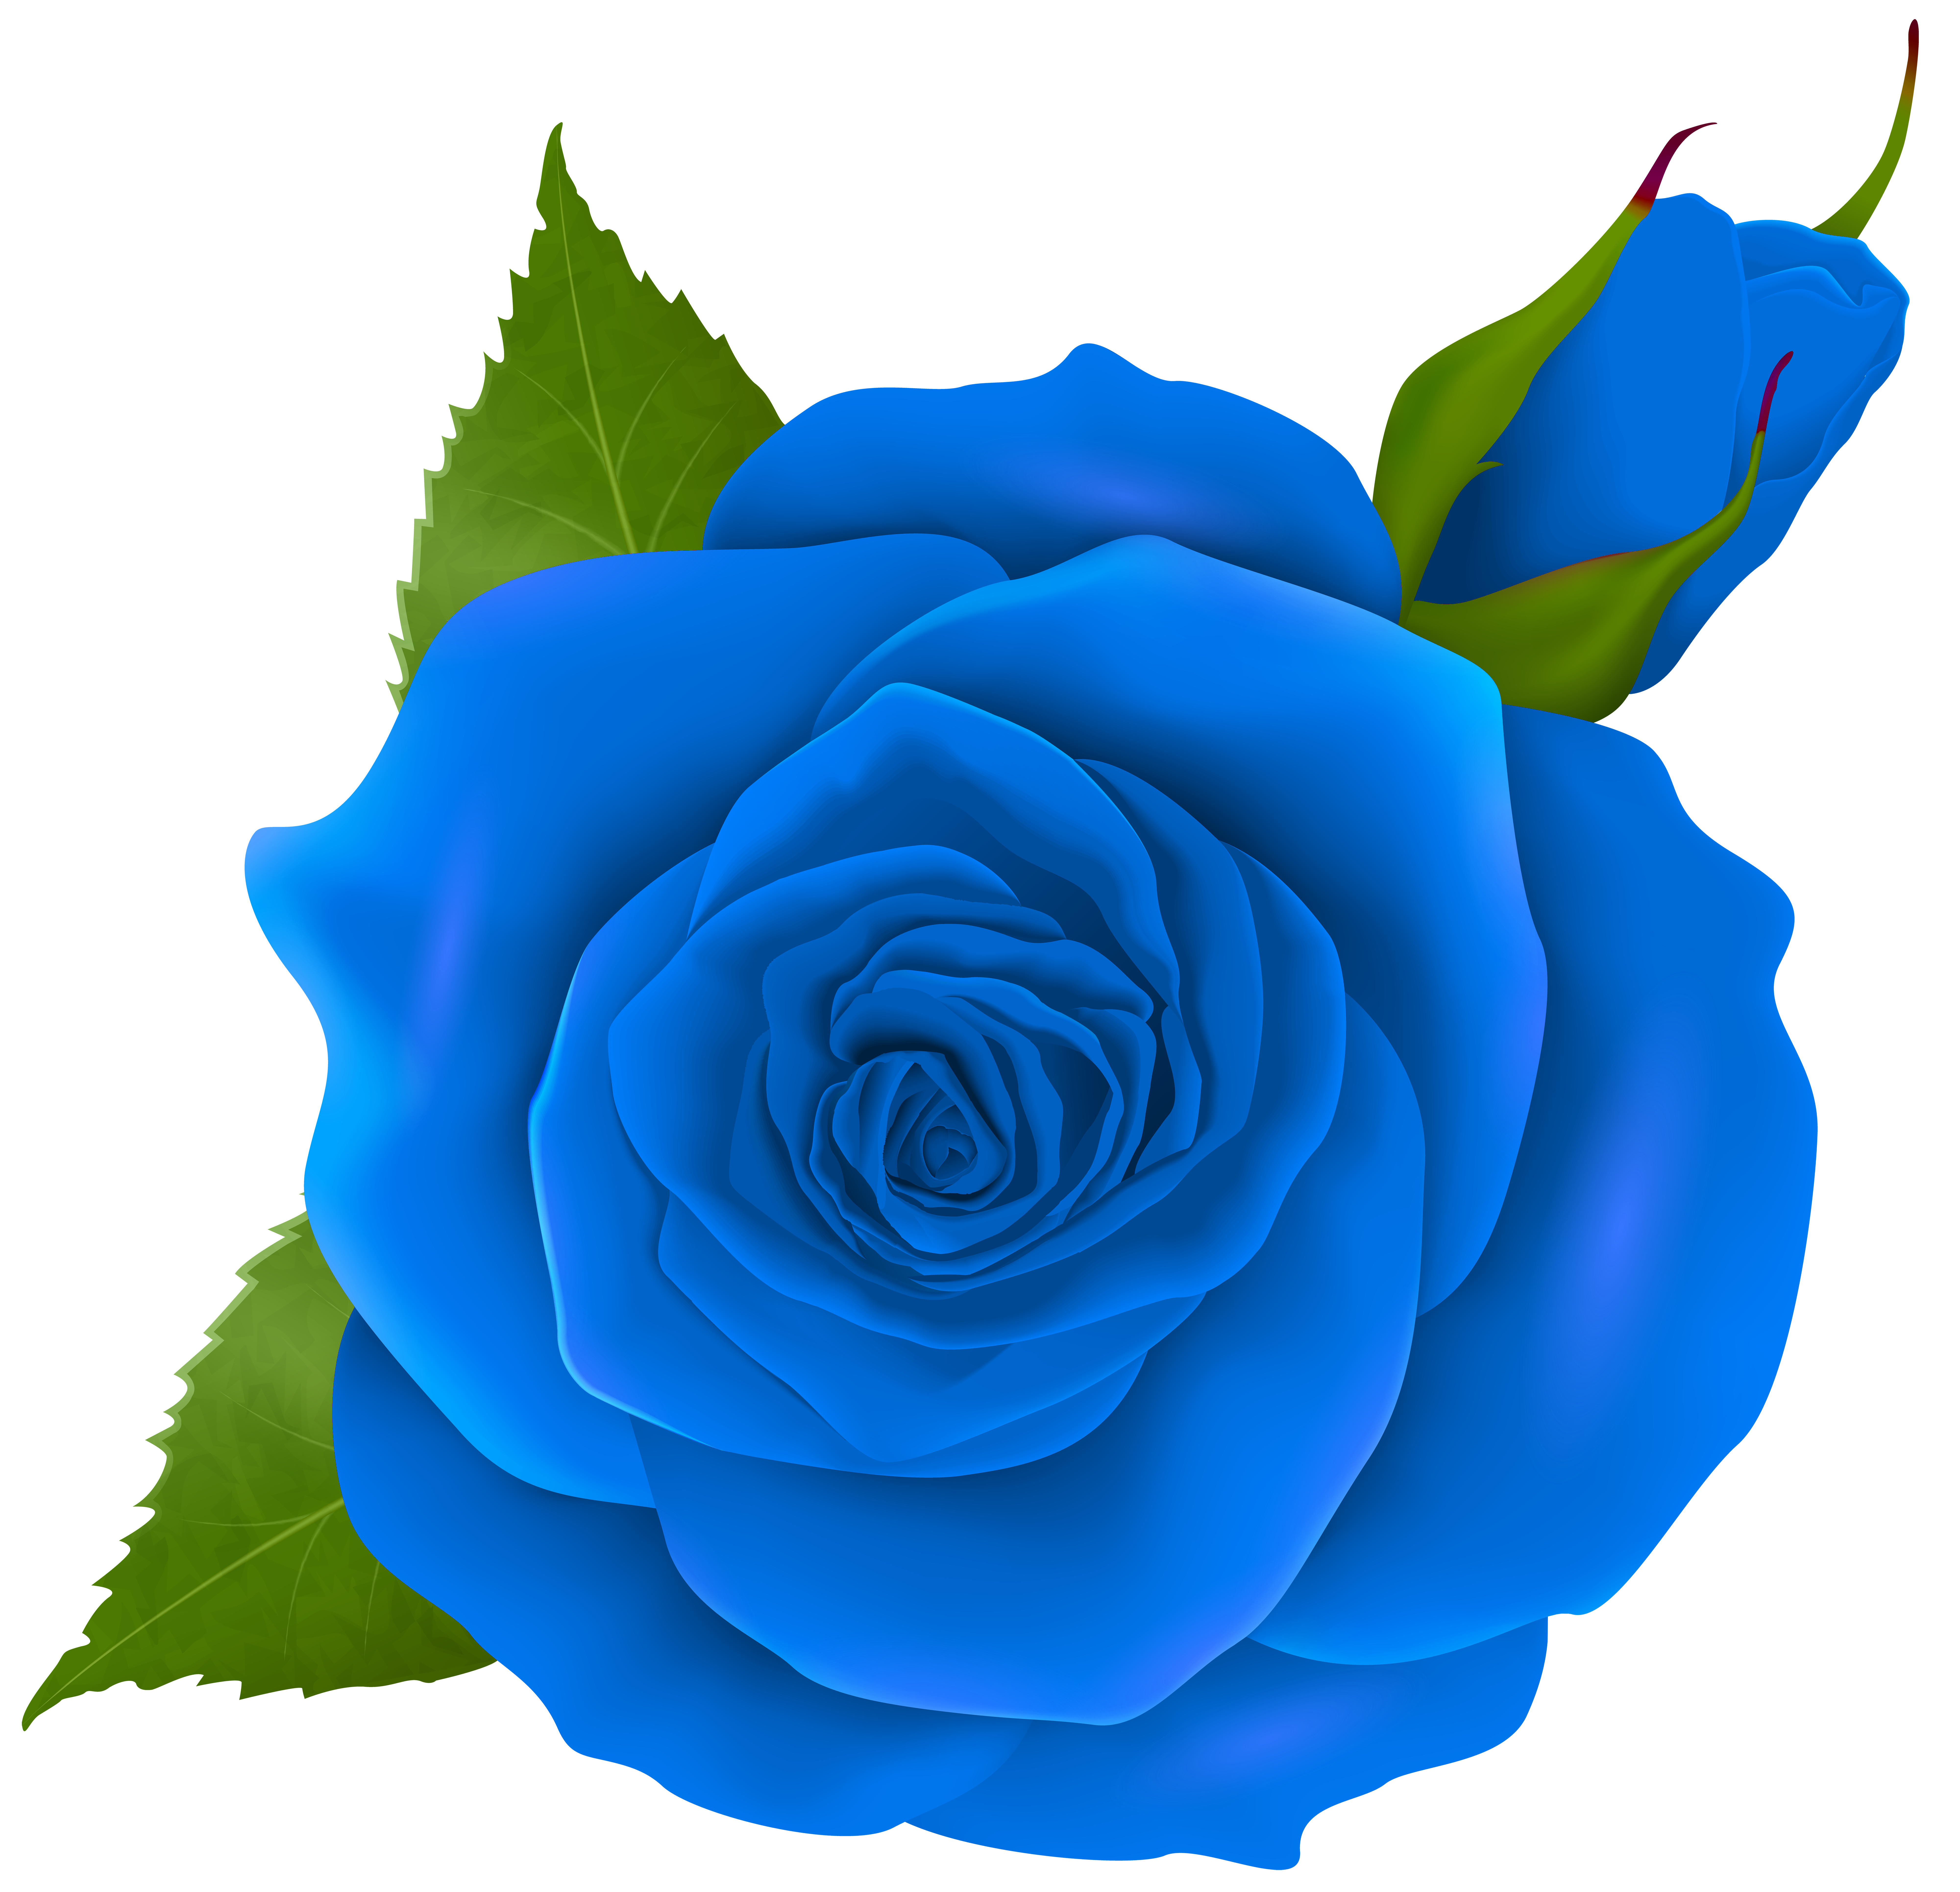 Clipart rose rose bud. Blue and transparent png